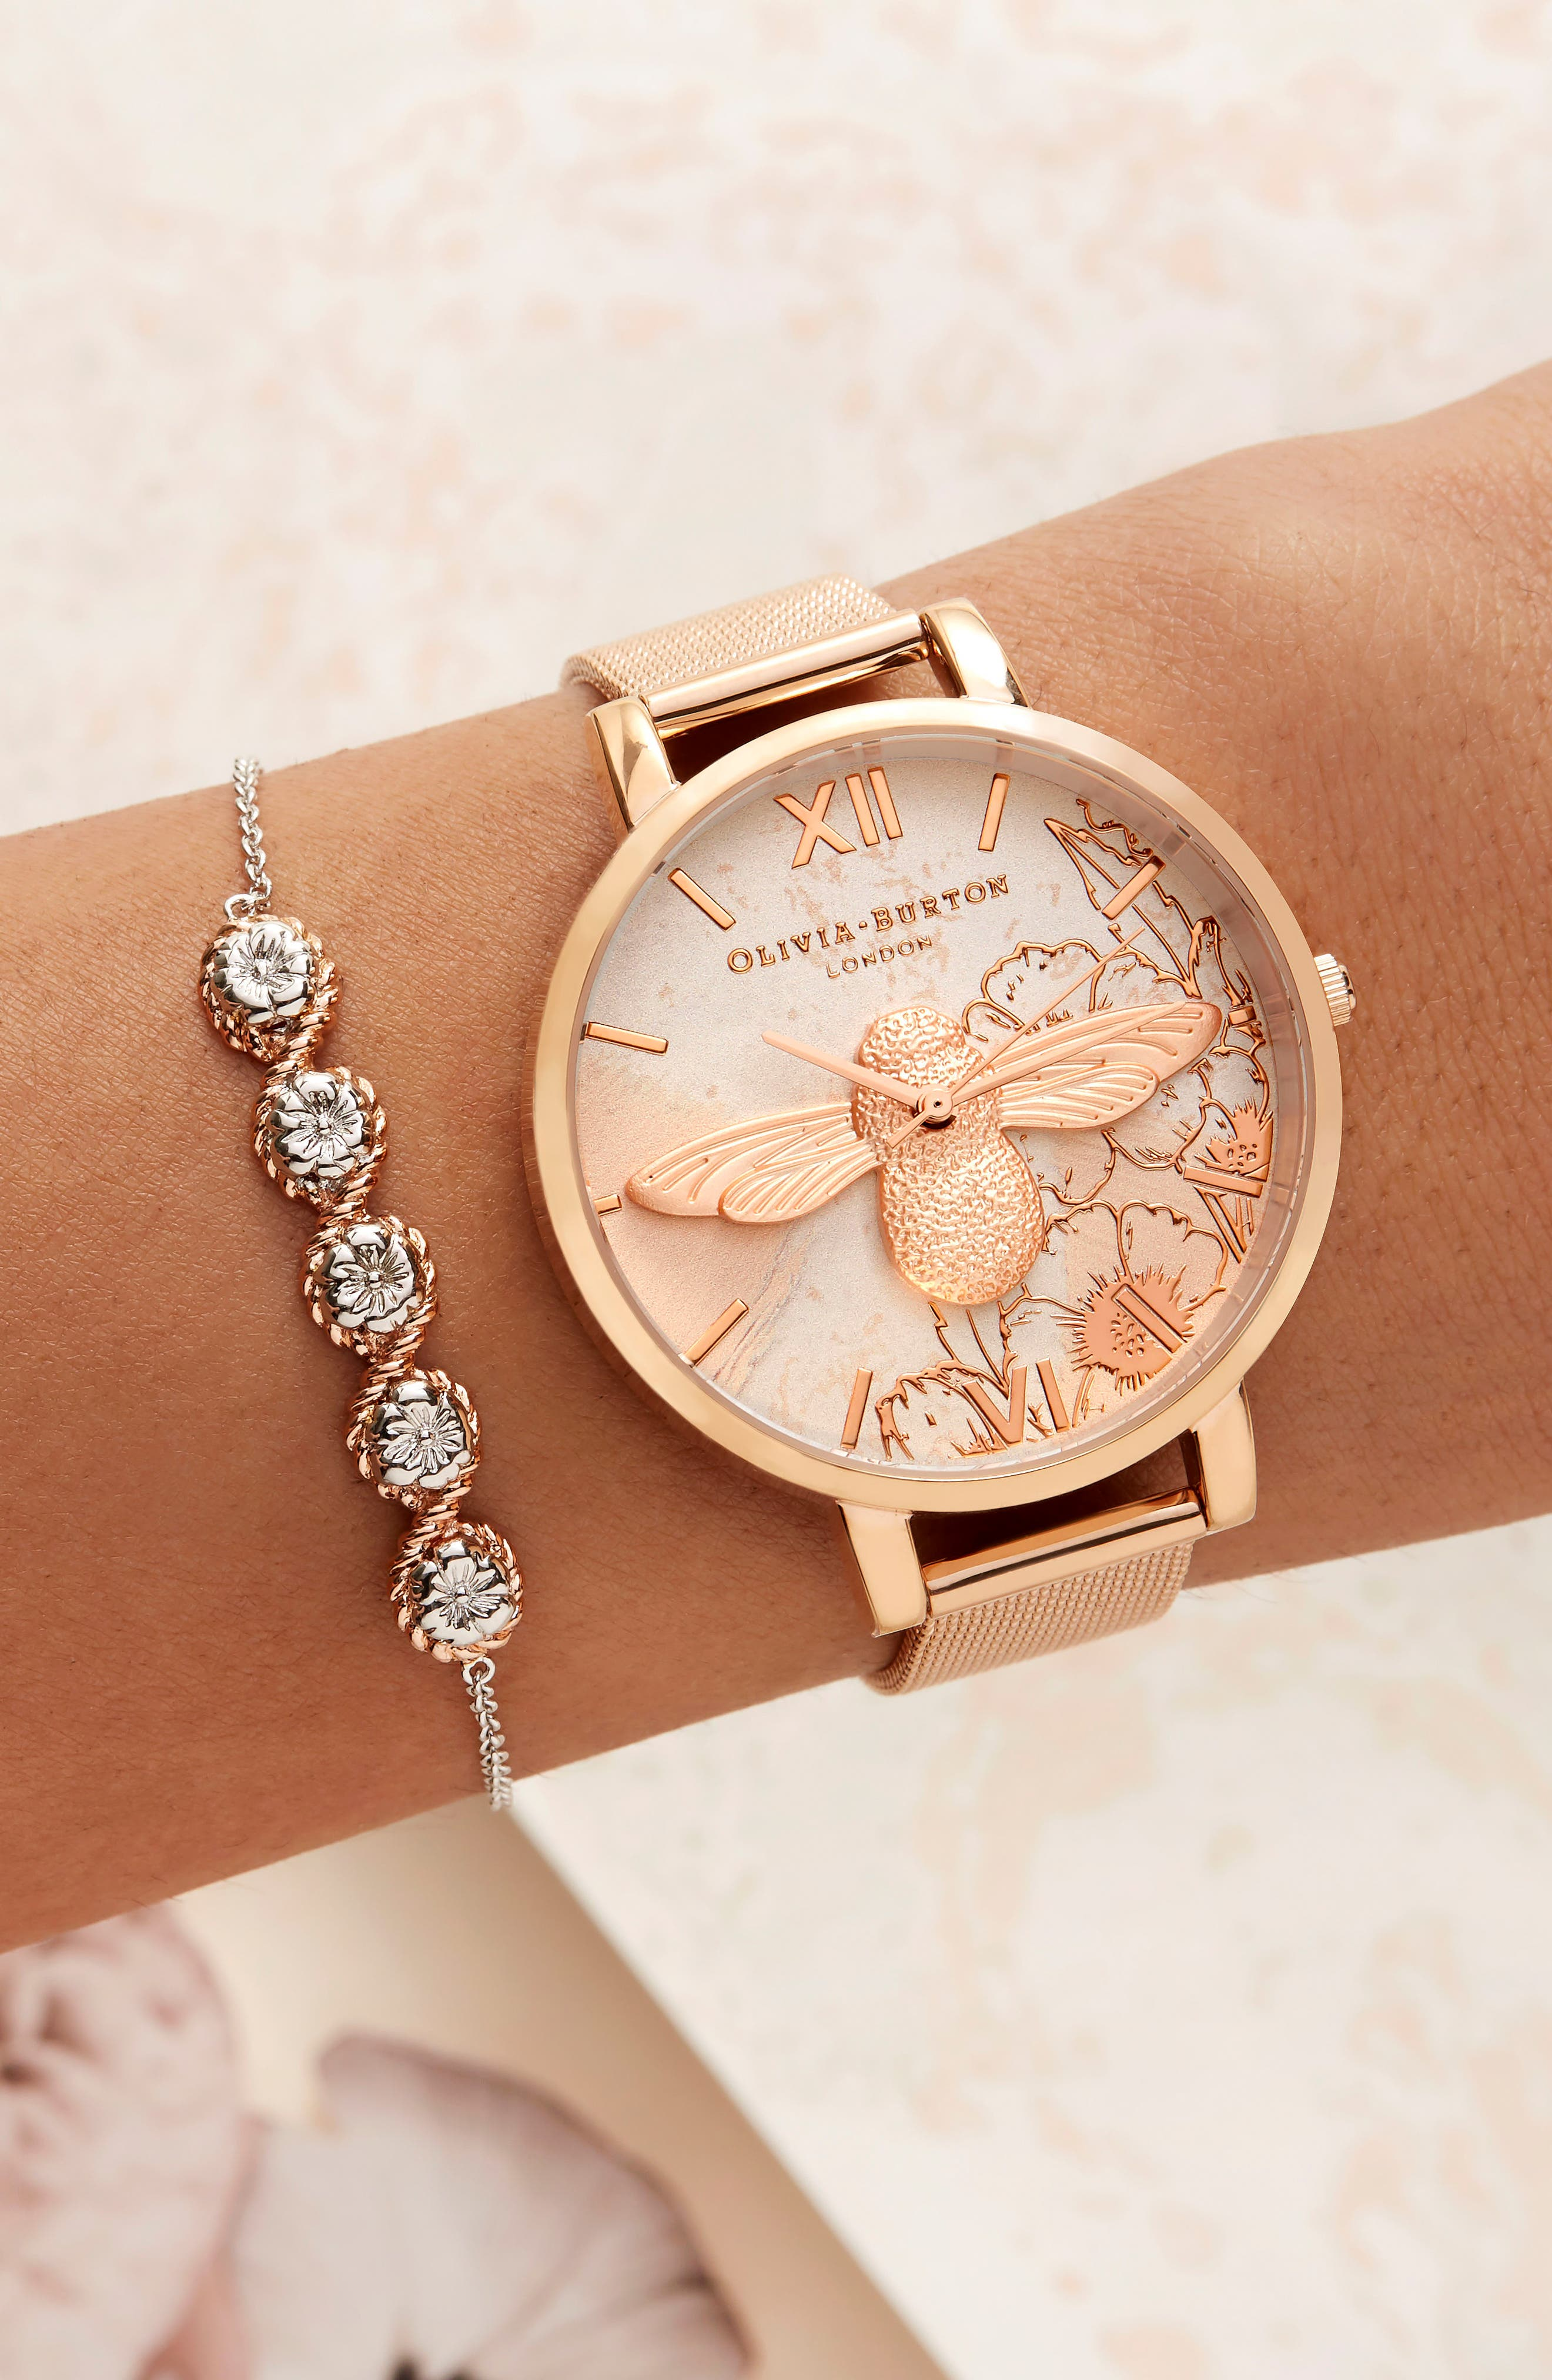 Abstract Floral Mesh Strap Watch, 38mm,                             Alternate thumbnail 7, color,                             ROSE GOLD/ FLORAL/ ROSE GOLD